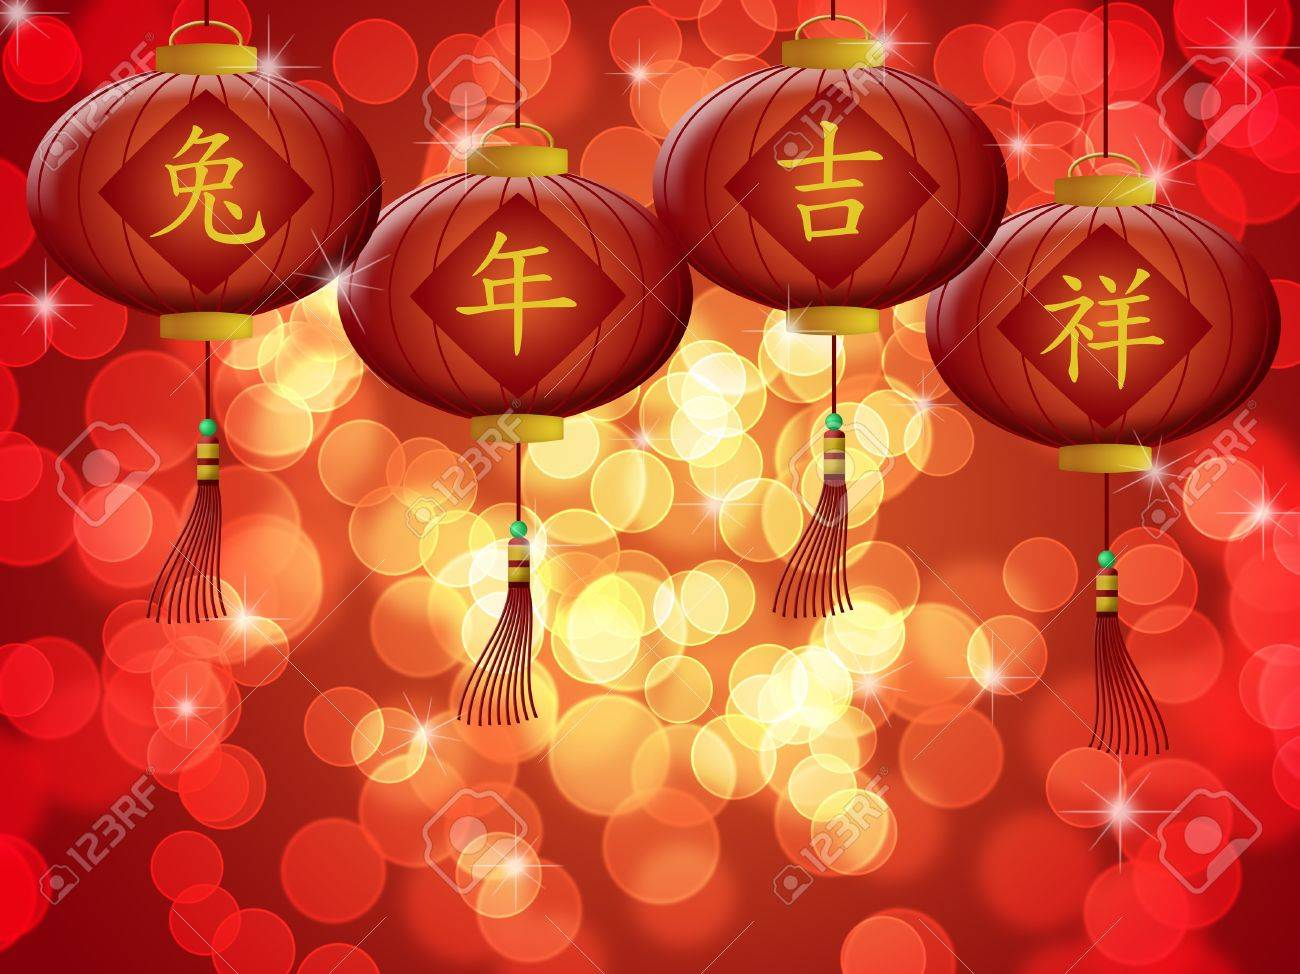 Happy Chinese New Year 2011 Rabbit with Red Lanterns Bokeh Illustration Stock Illustration - 8639614